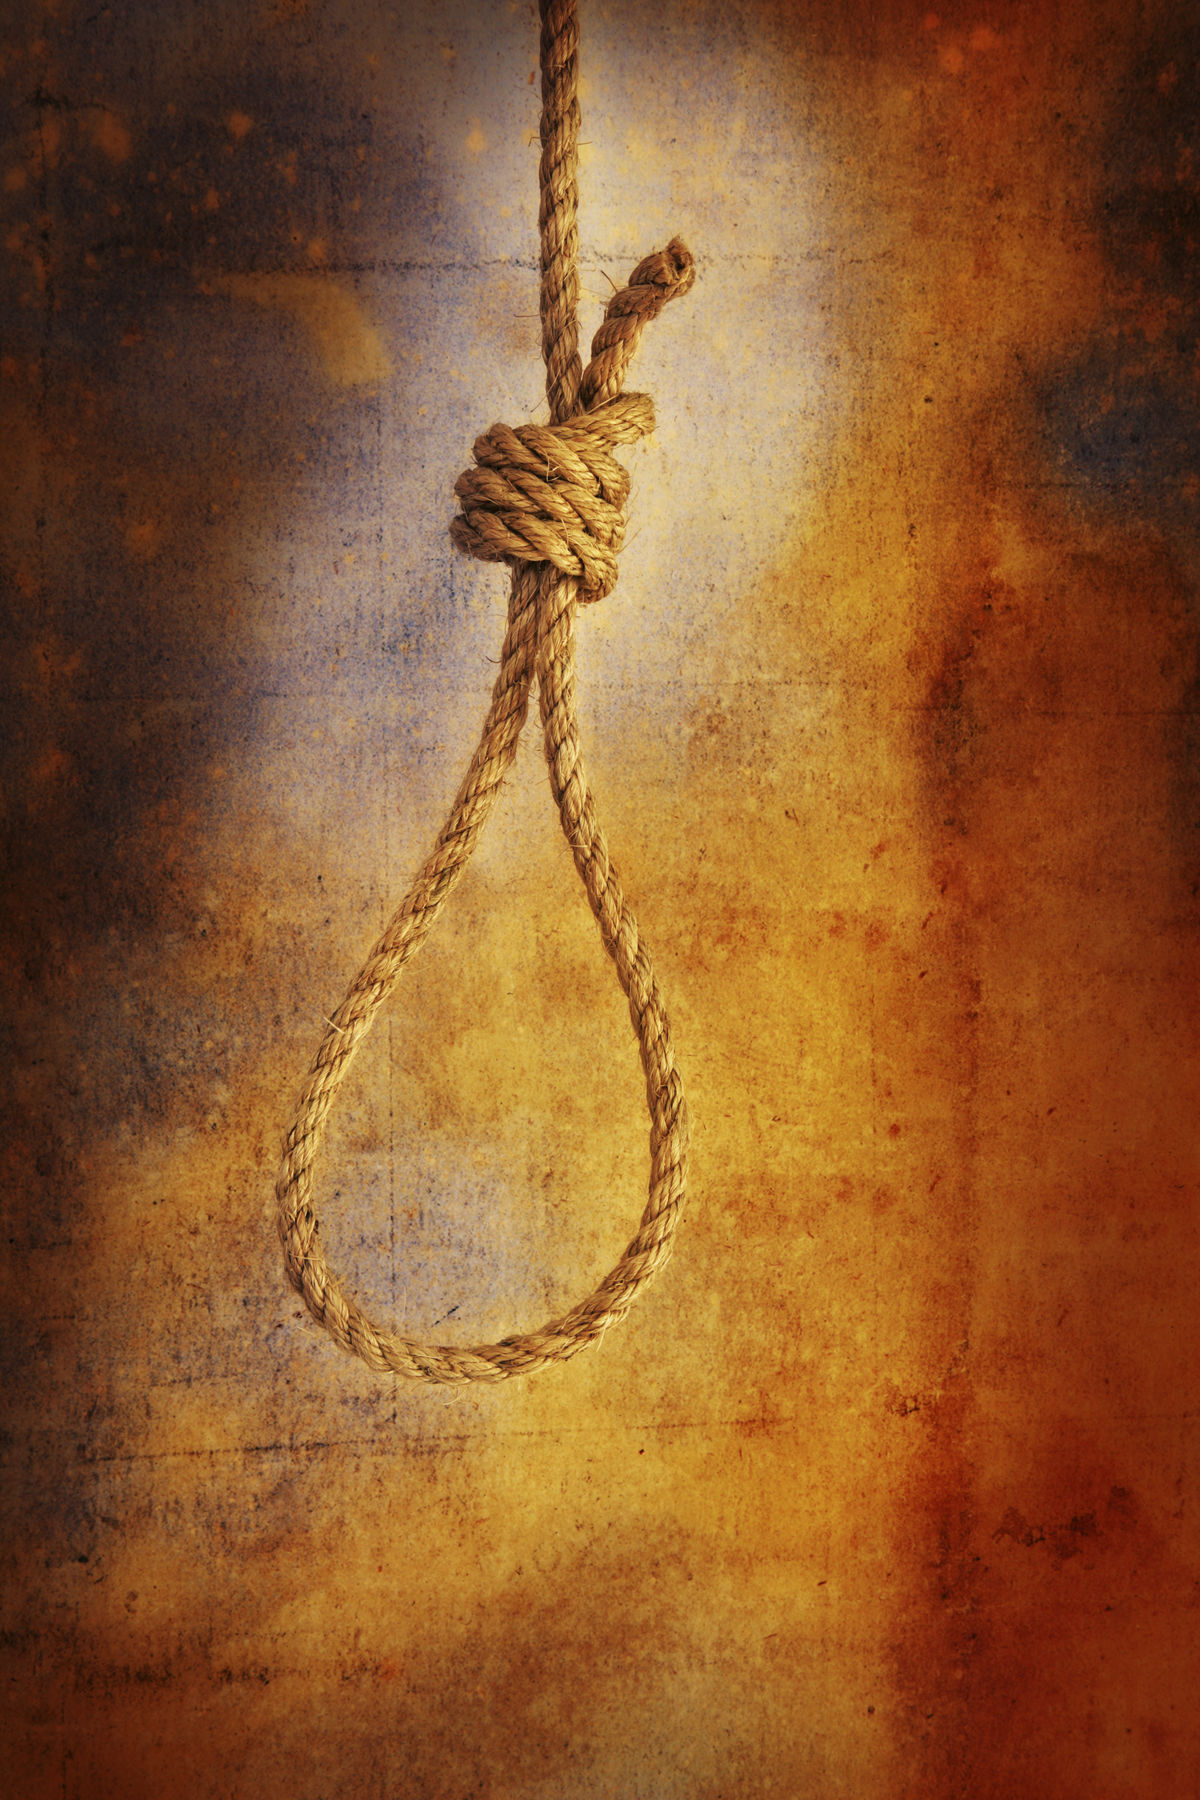 Noose on grunge background - vertical Bright Close-up Day Execution Grunge Hanging Hangman Hangman's Knot Knot No People Noose Rope Suicide